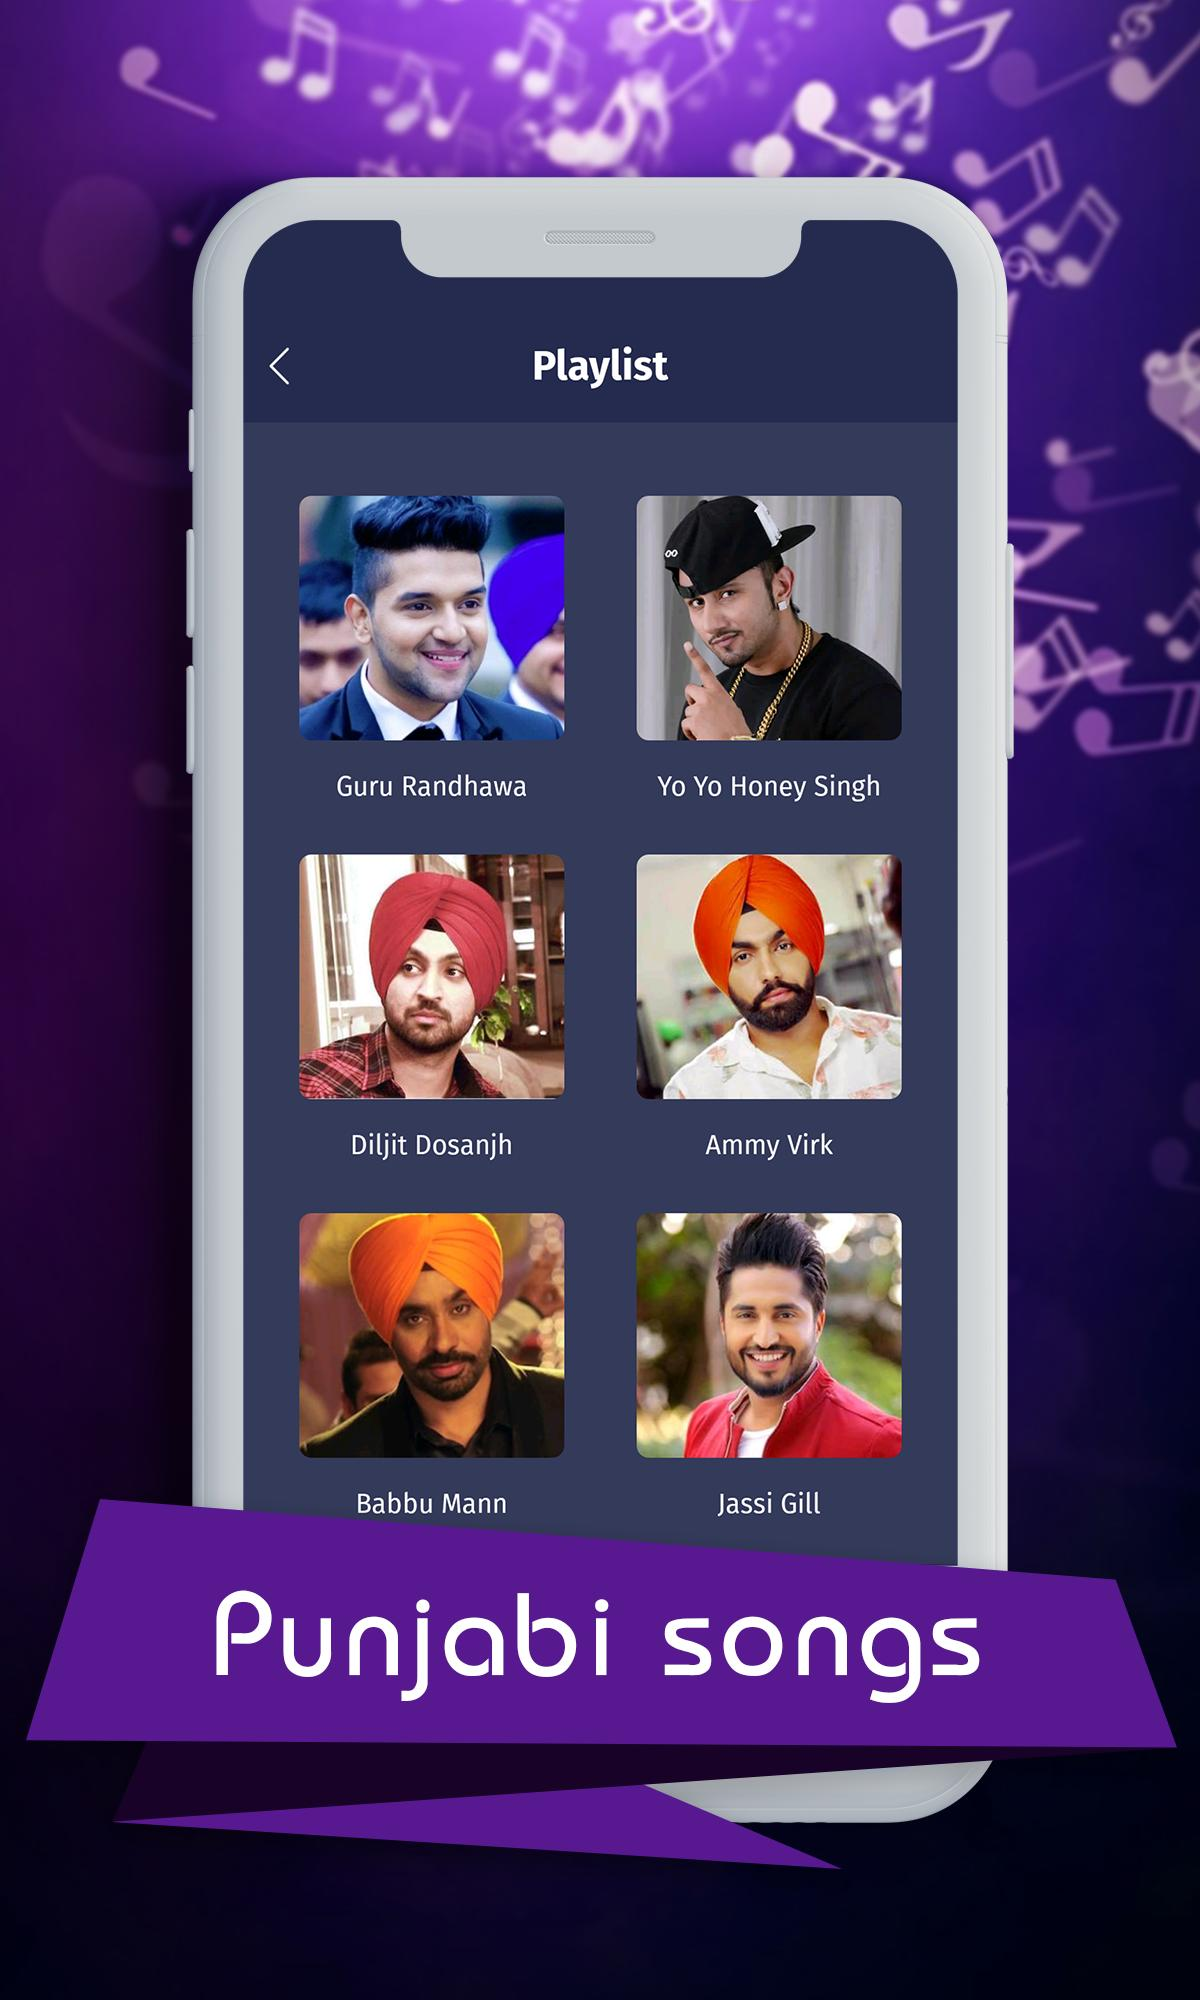 Punjabi songs 2019 New punjabi video song for Android - APK Download